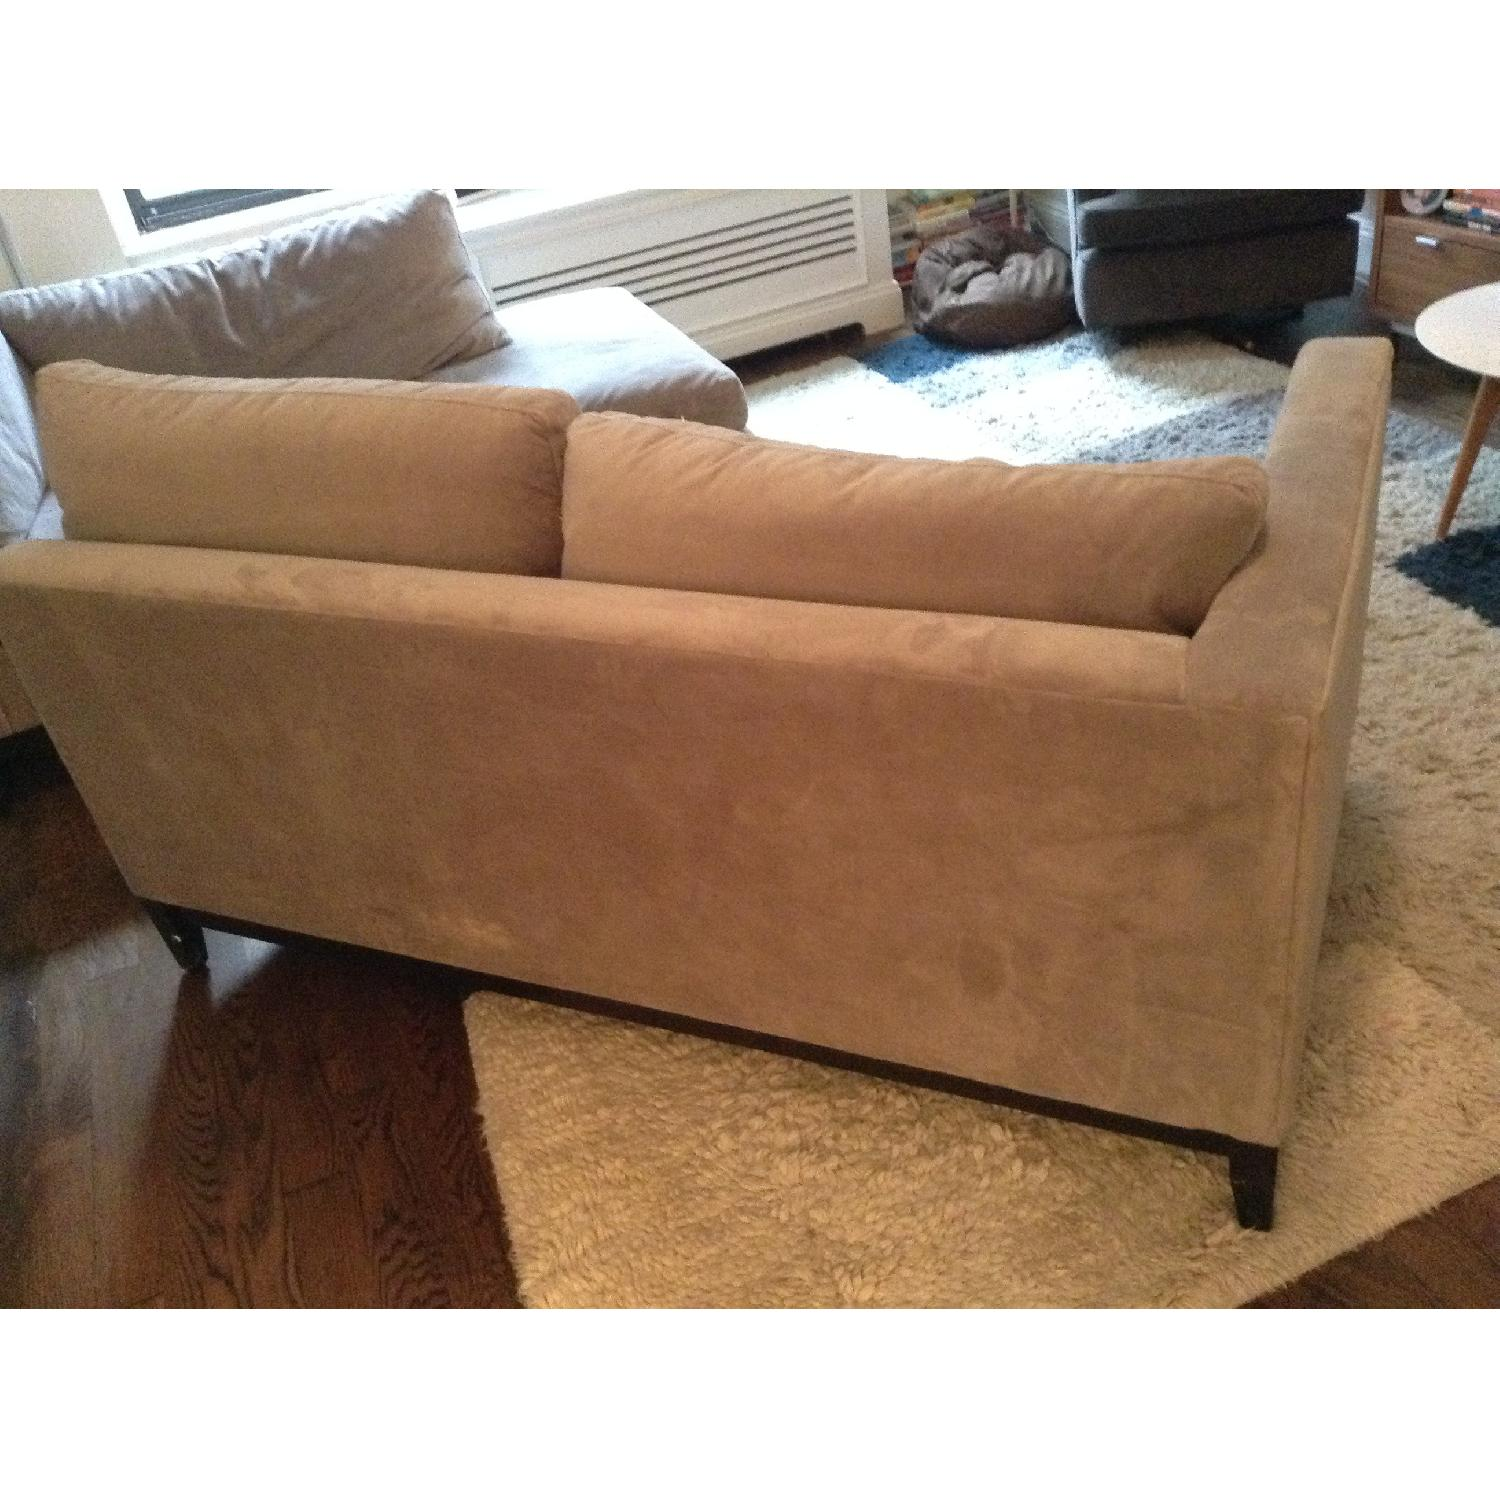 West Elm Blake Sectional Sofa w/ Chaise - image-5